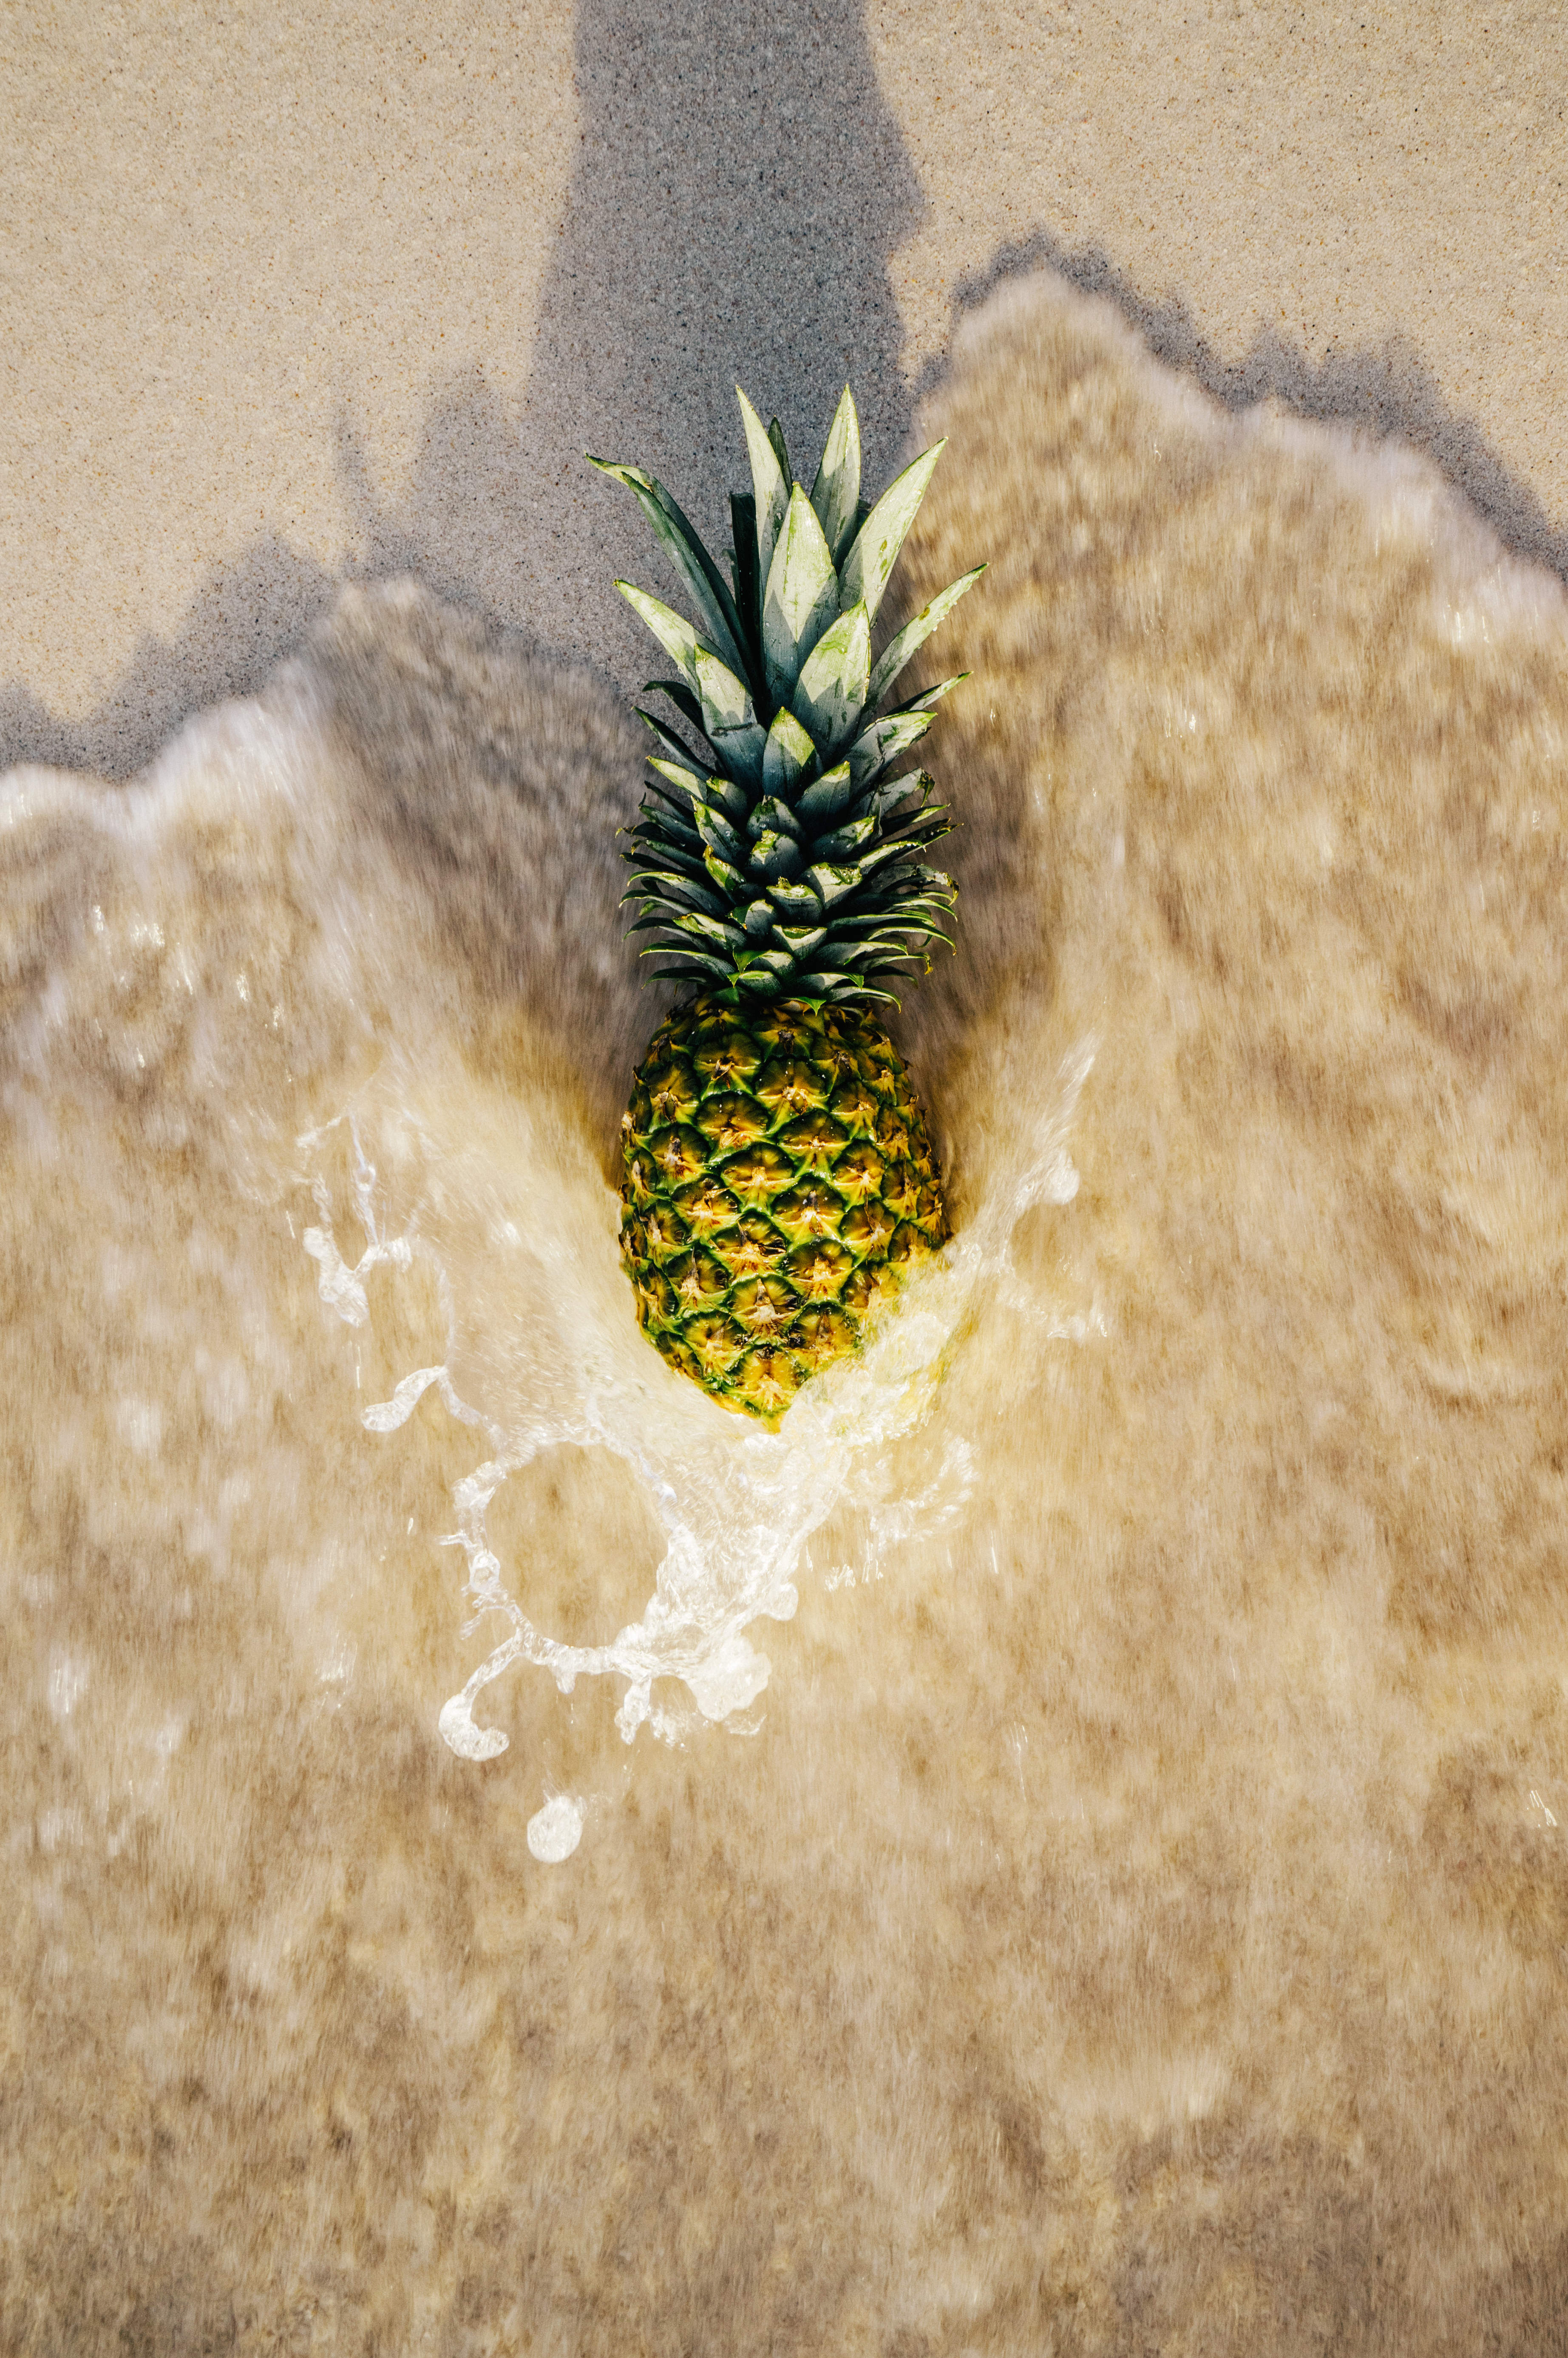 Cute Wallpaper Hd For Phone Pineapple Fruit On Shore 183 Free Stock Photo